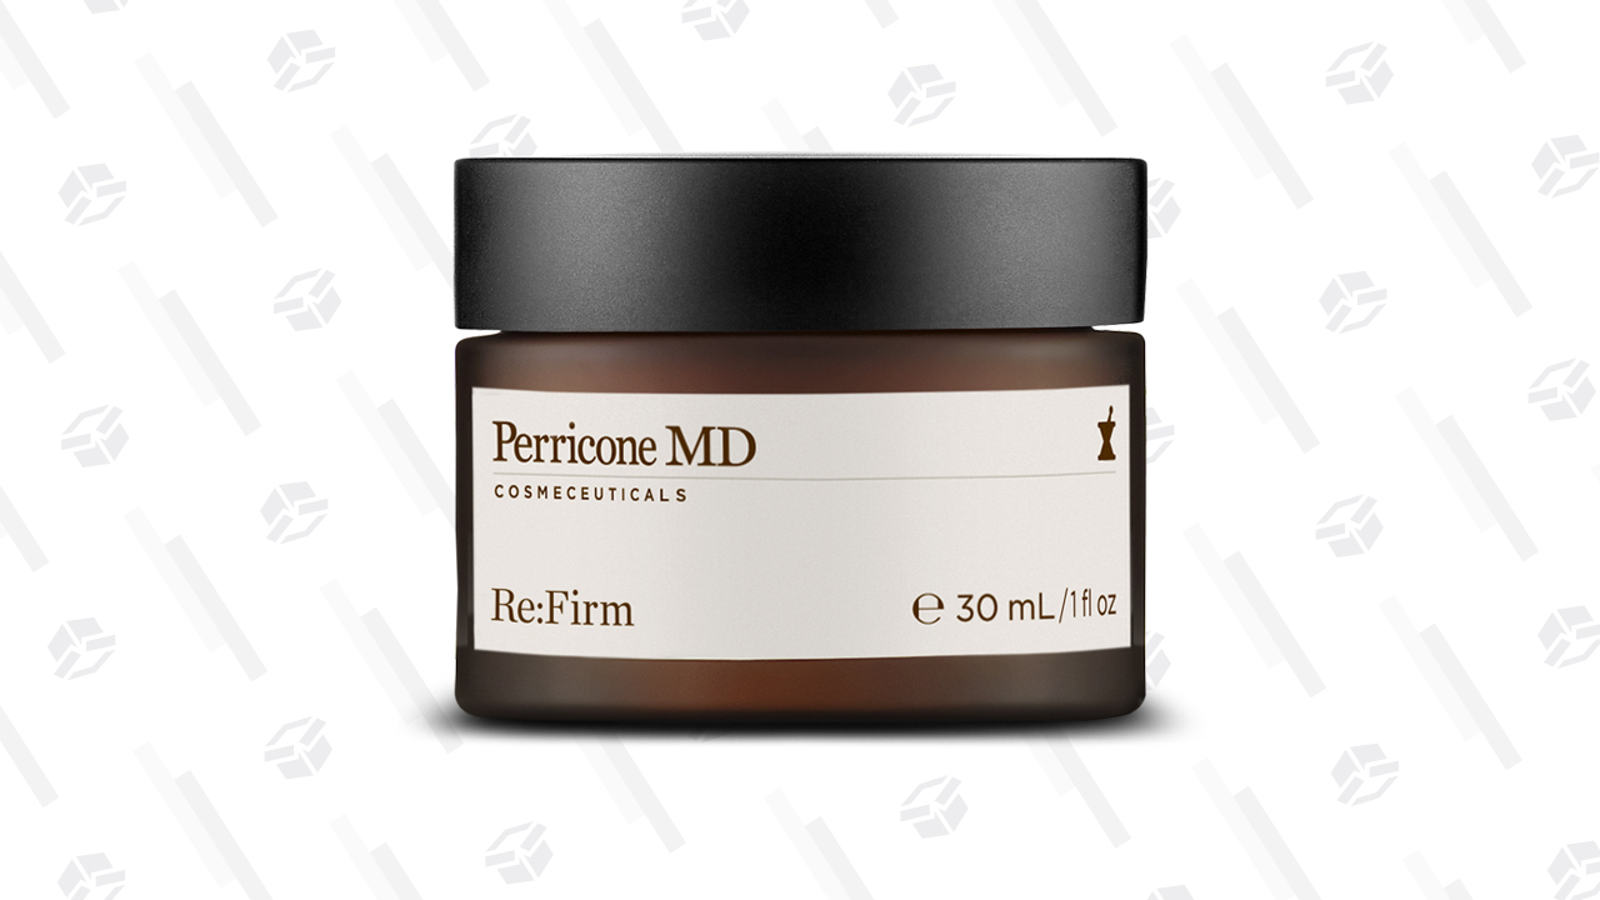 Re:Firm | Perricone MD